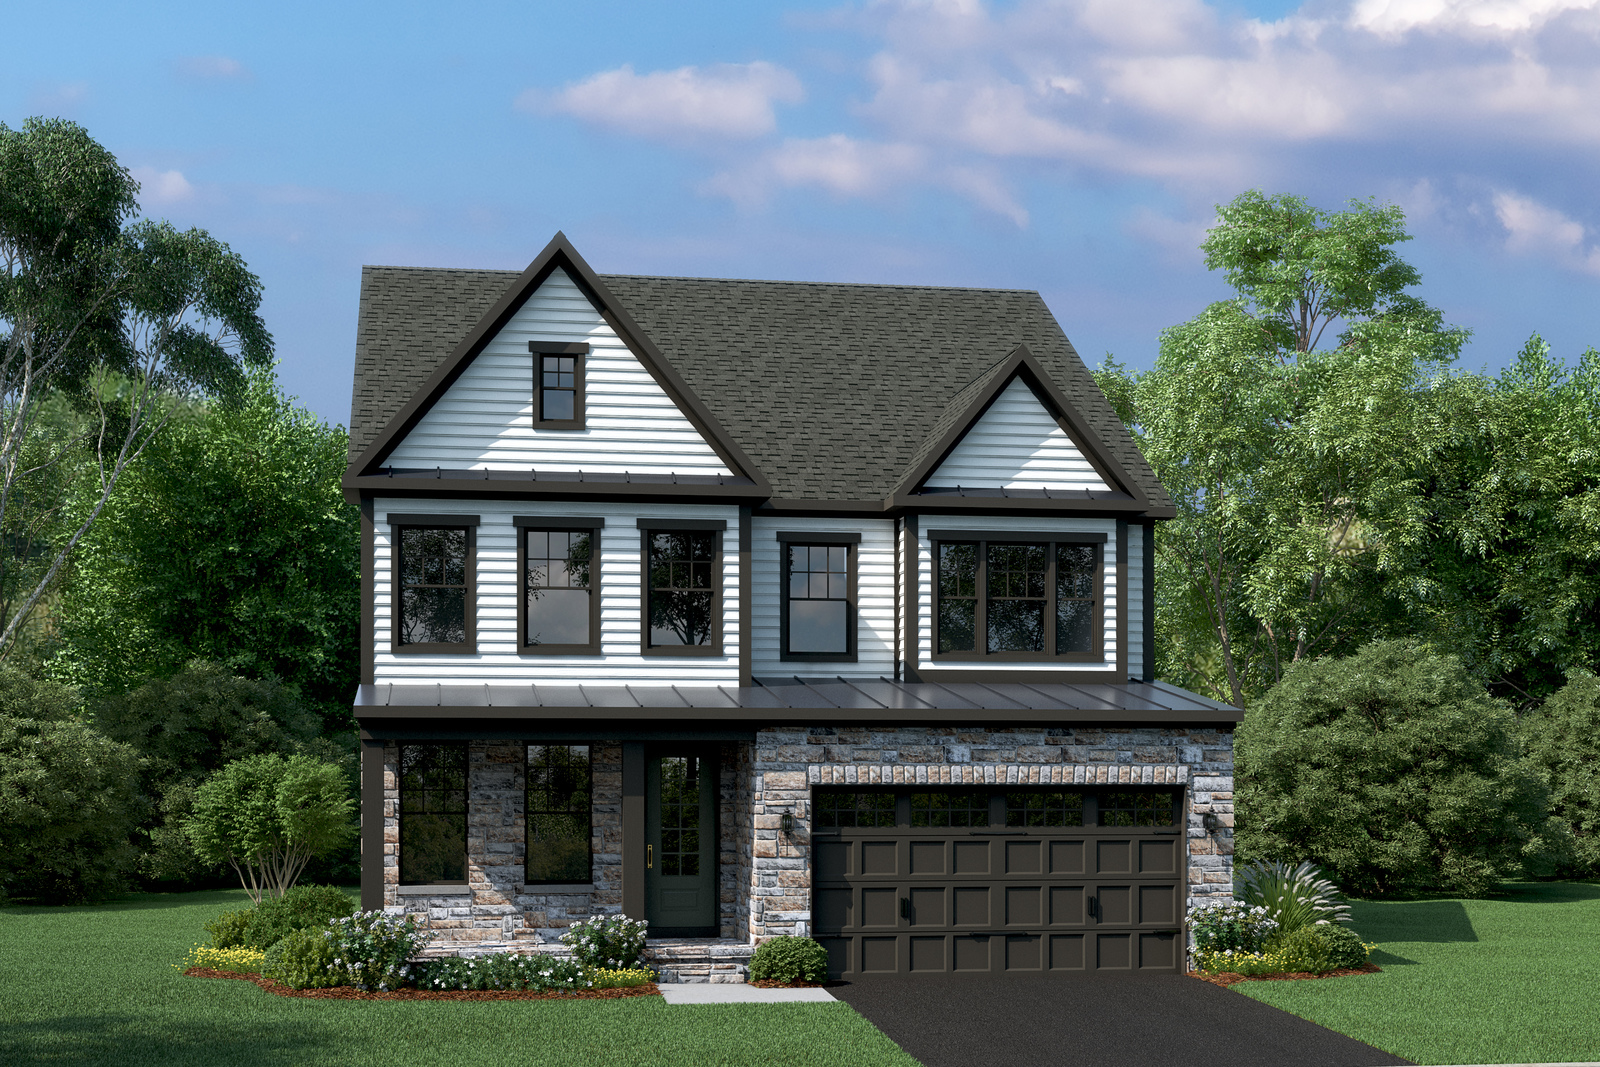 Introducing an exclusive community of 25 Premier Series homes on 1/3 acre lots in Tuckahoe's Freeman HS District. From the mid $400s.